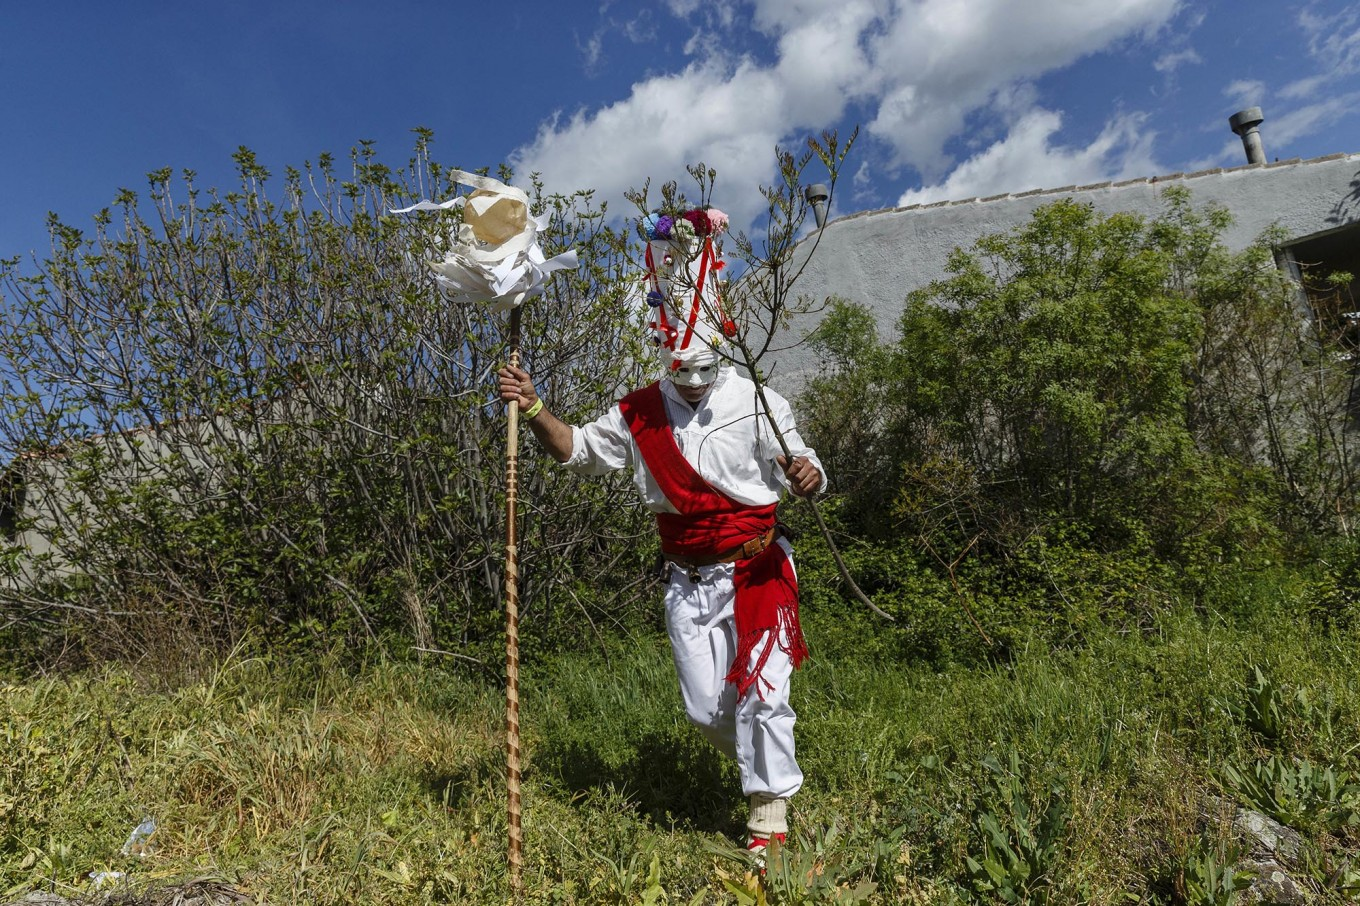 In this April 1, 2017 picture a reveler in a mask from the traditional La Vijanera de Silio carnival runs after picking a branch from a tree during a parade at a gathering of different villages' carnival masks and characters in the small village of Casavieja, Spain, Monday, April 3, 2017. These festivals, held across central and northwestern Spain, most often coincide with festivities celebrating the advent of spring, mixing Carnival and bizarre pagan-like rituals with mock battles between good and evil. AP/Daniel Ochoa de Olza